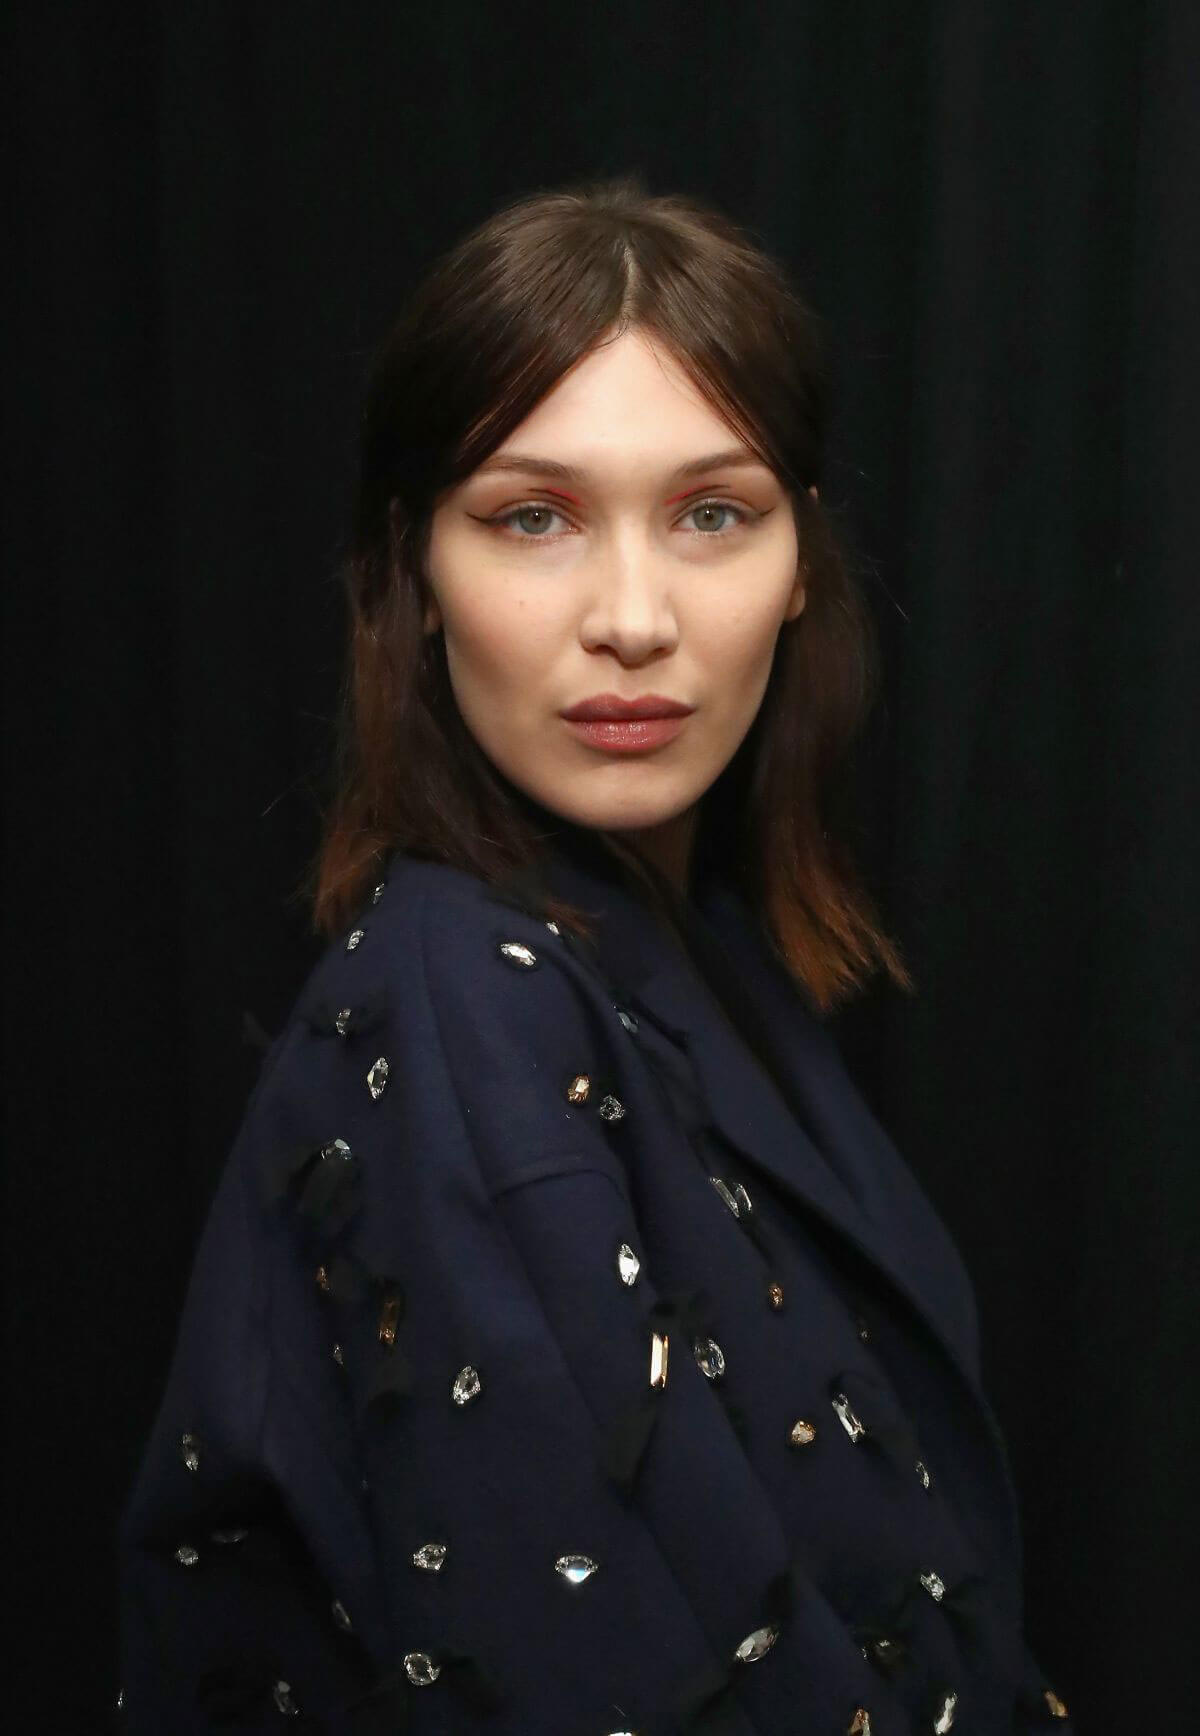 Bella Hadid Stills on the Backstage of Jason Wu Show at NYFW in New York 2018/02/09